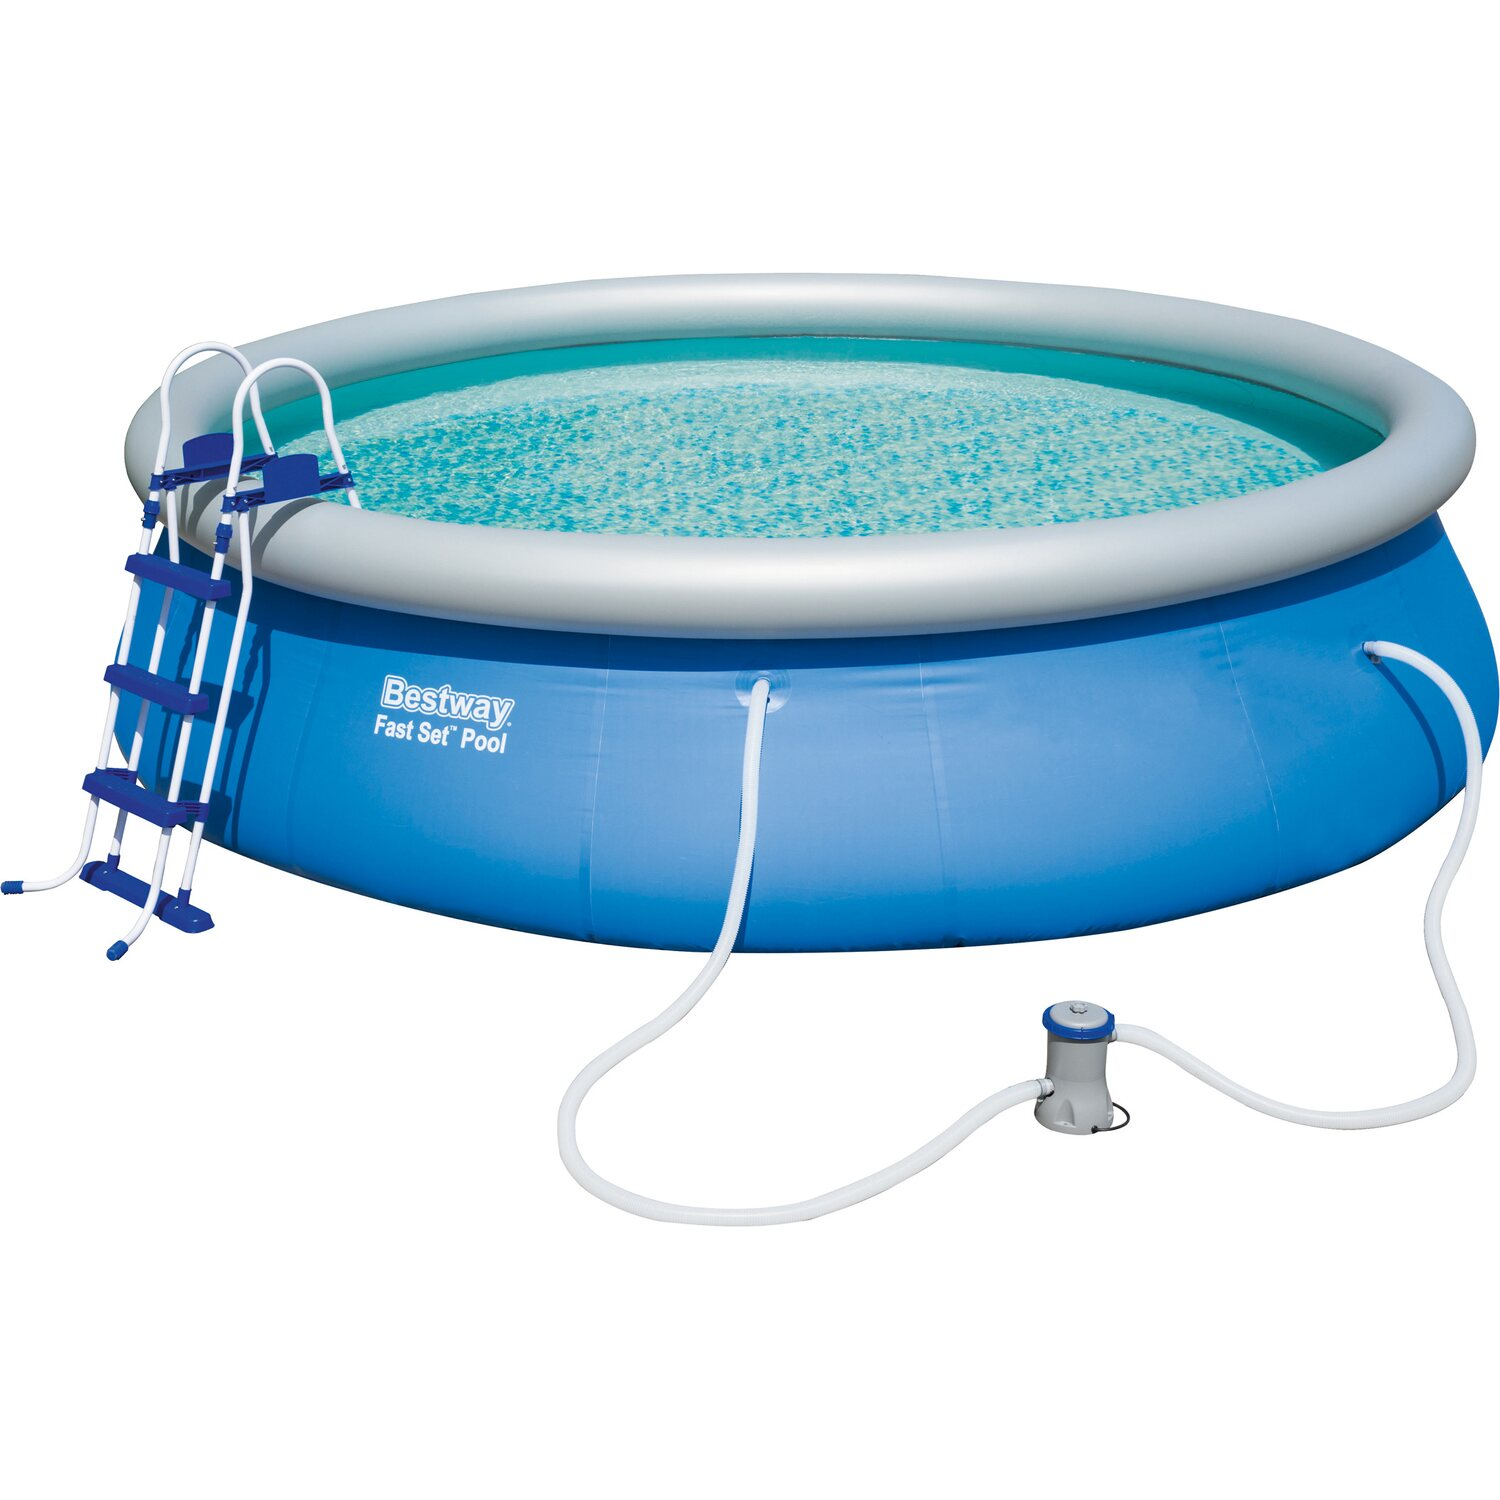 Bestway fast set pool 457 cm x 107 cm kaufen bei obi for Bestway pool obi